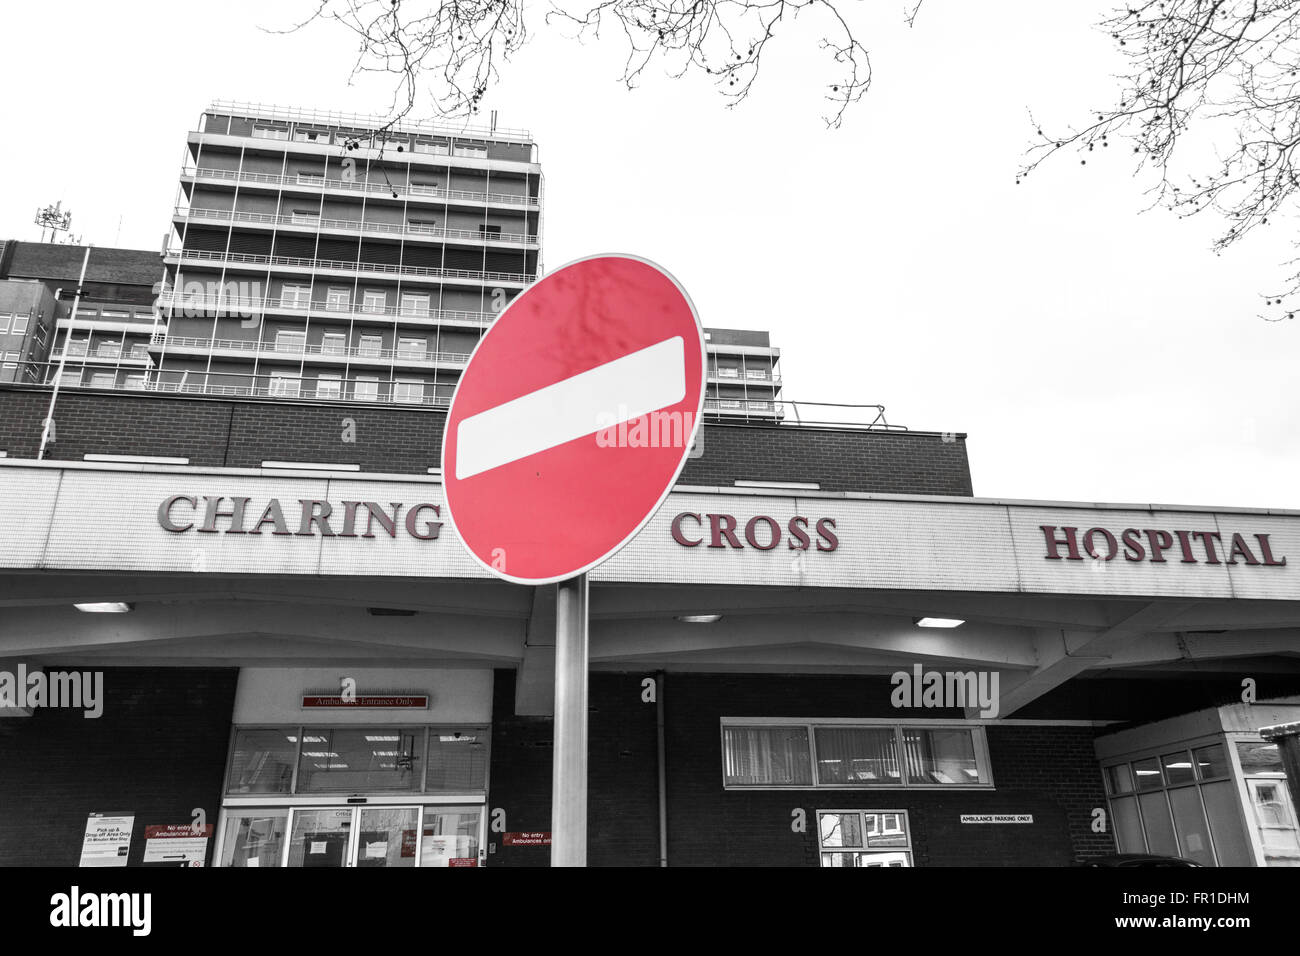 No Entry sign outside Charring Cross Hospital in SW London, UK - Stock Image